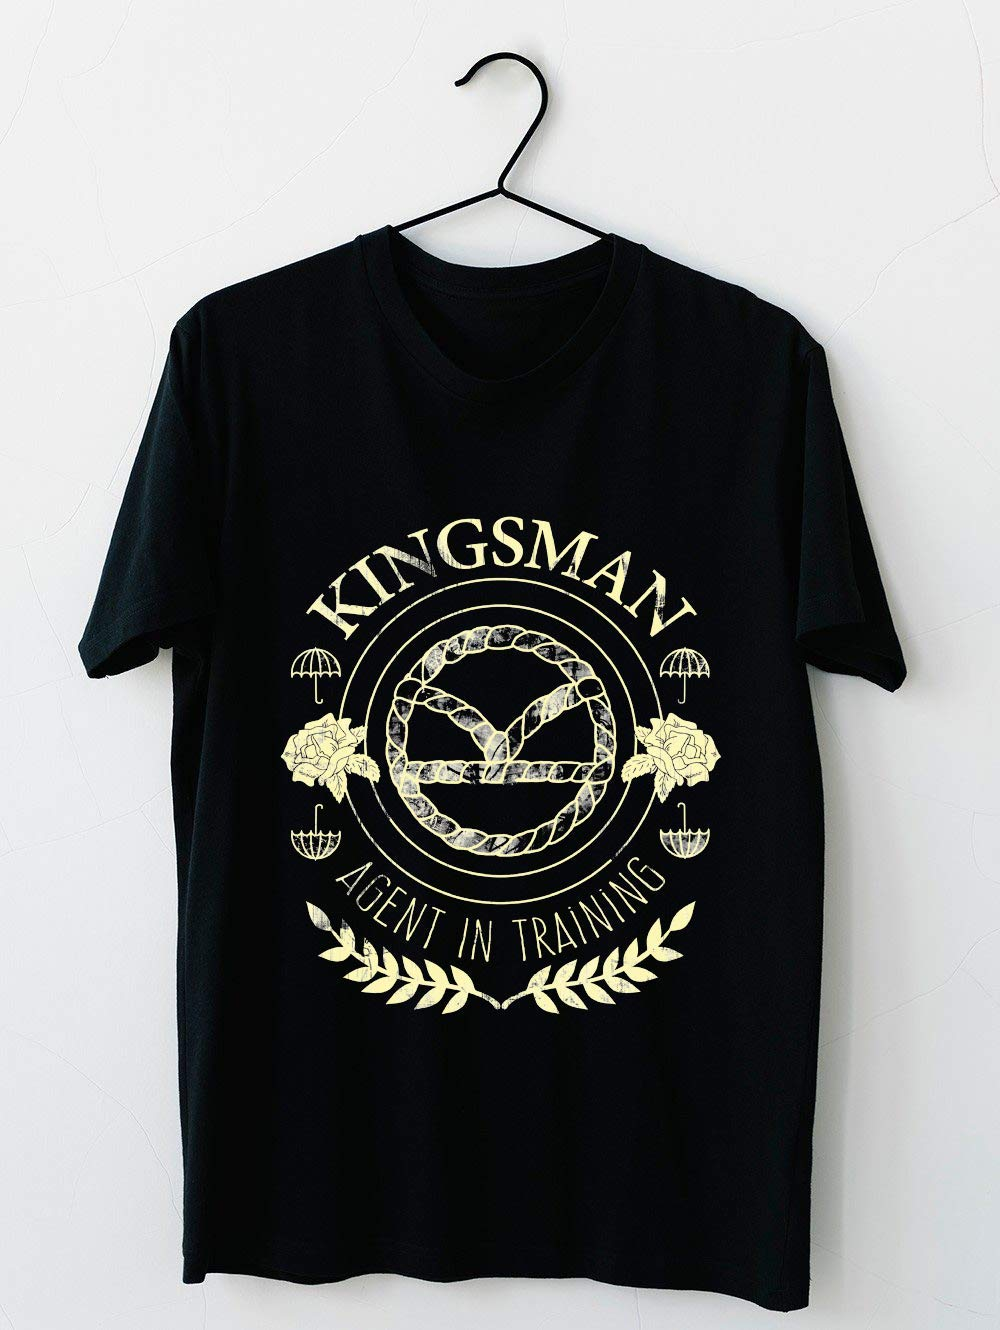 Agent In Training 2 5 T Shirt For Unisex